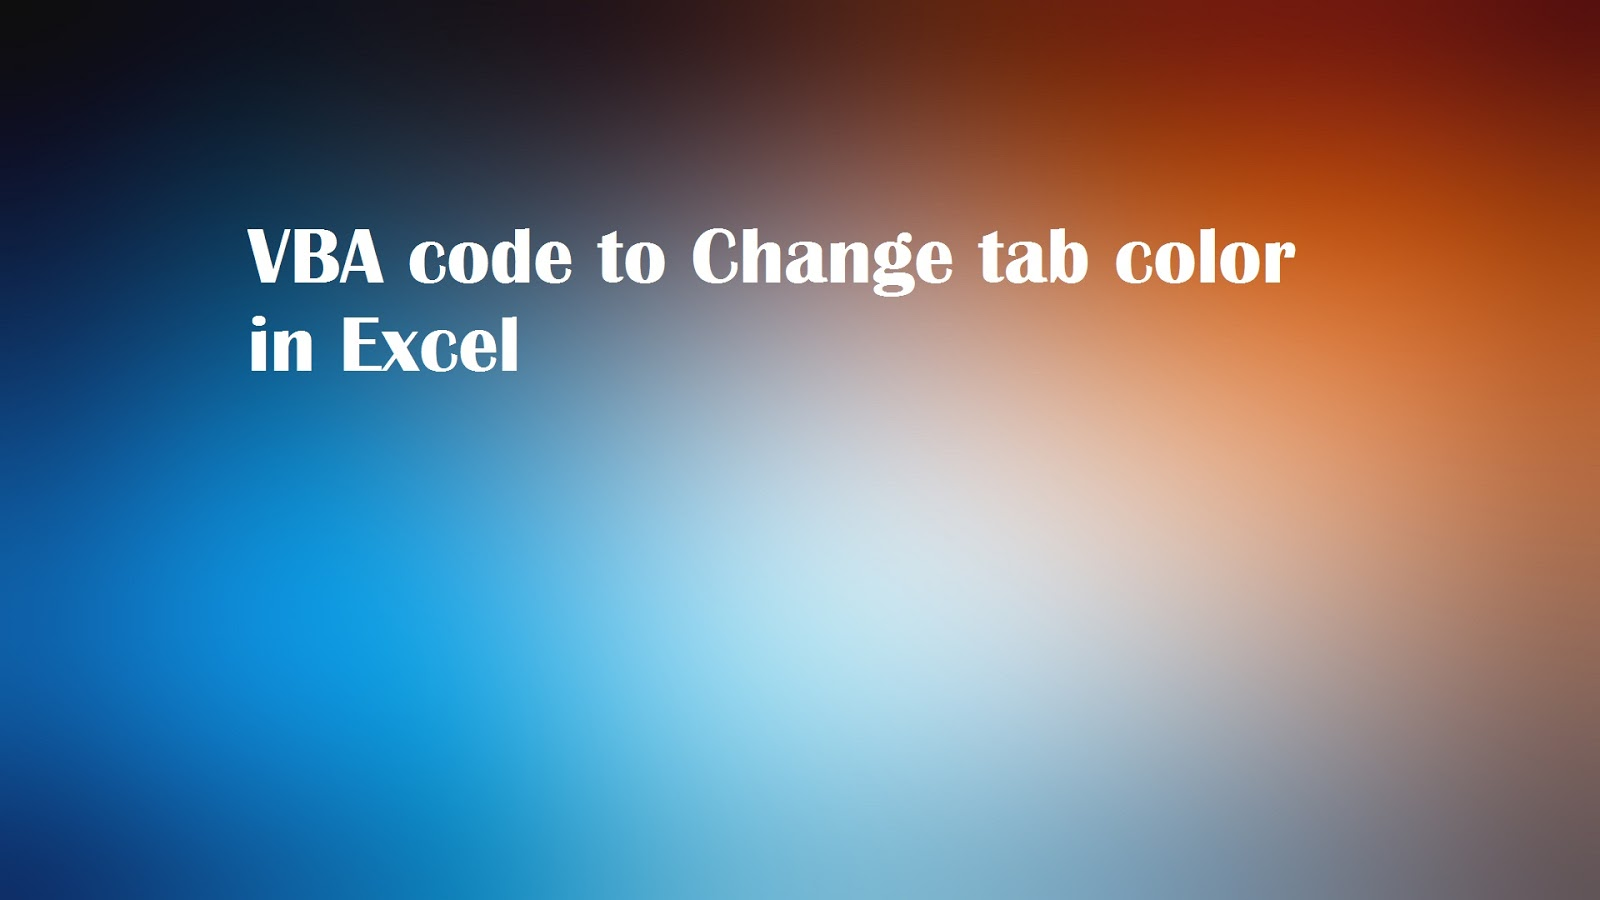 VBA Tricks and Tips: VBA code to change tab color in excel workbook!!!